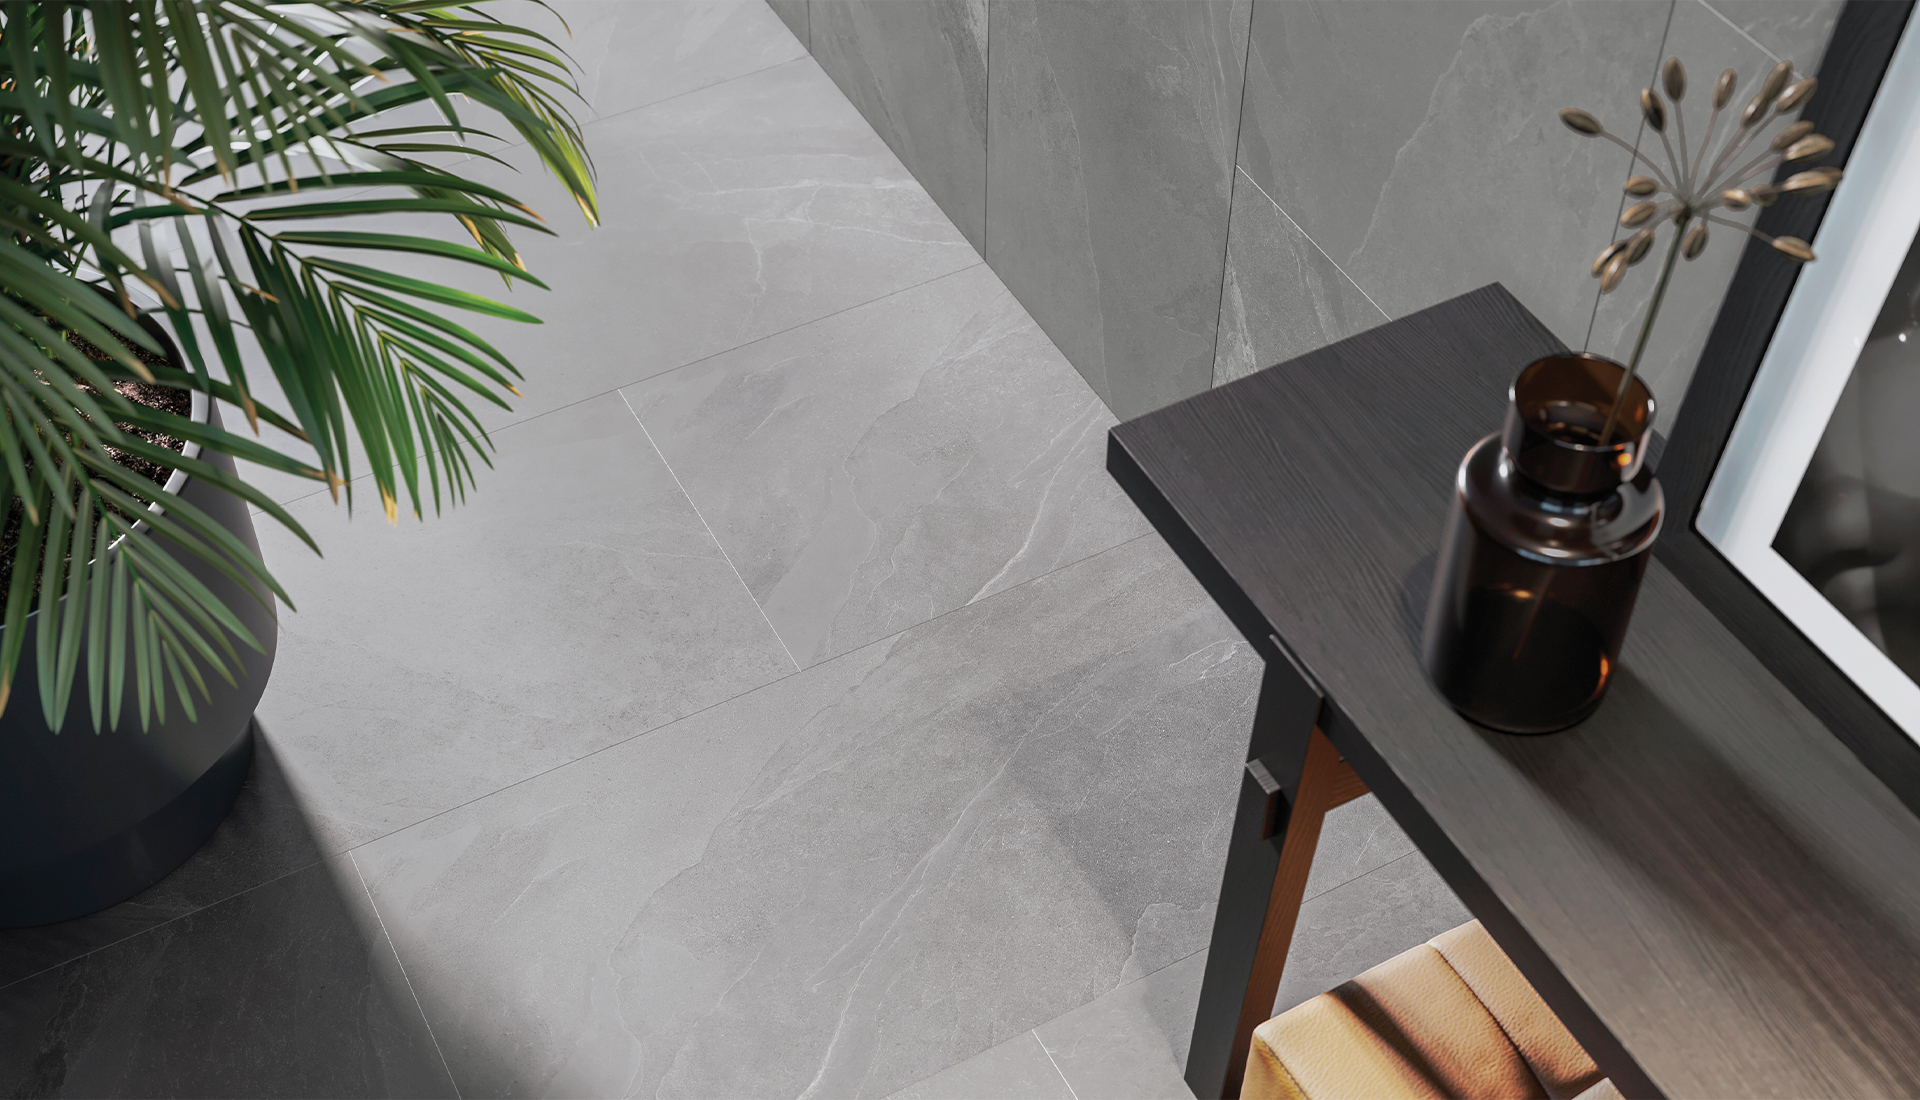 24 x 48 in / 59.5 x 119.5 cm Nord Chromium Matte Rectified Color Body Porcelain Tile